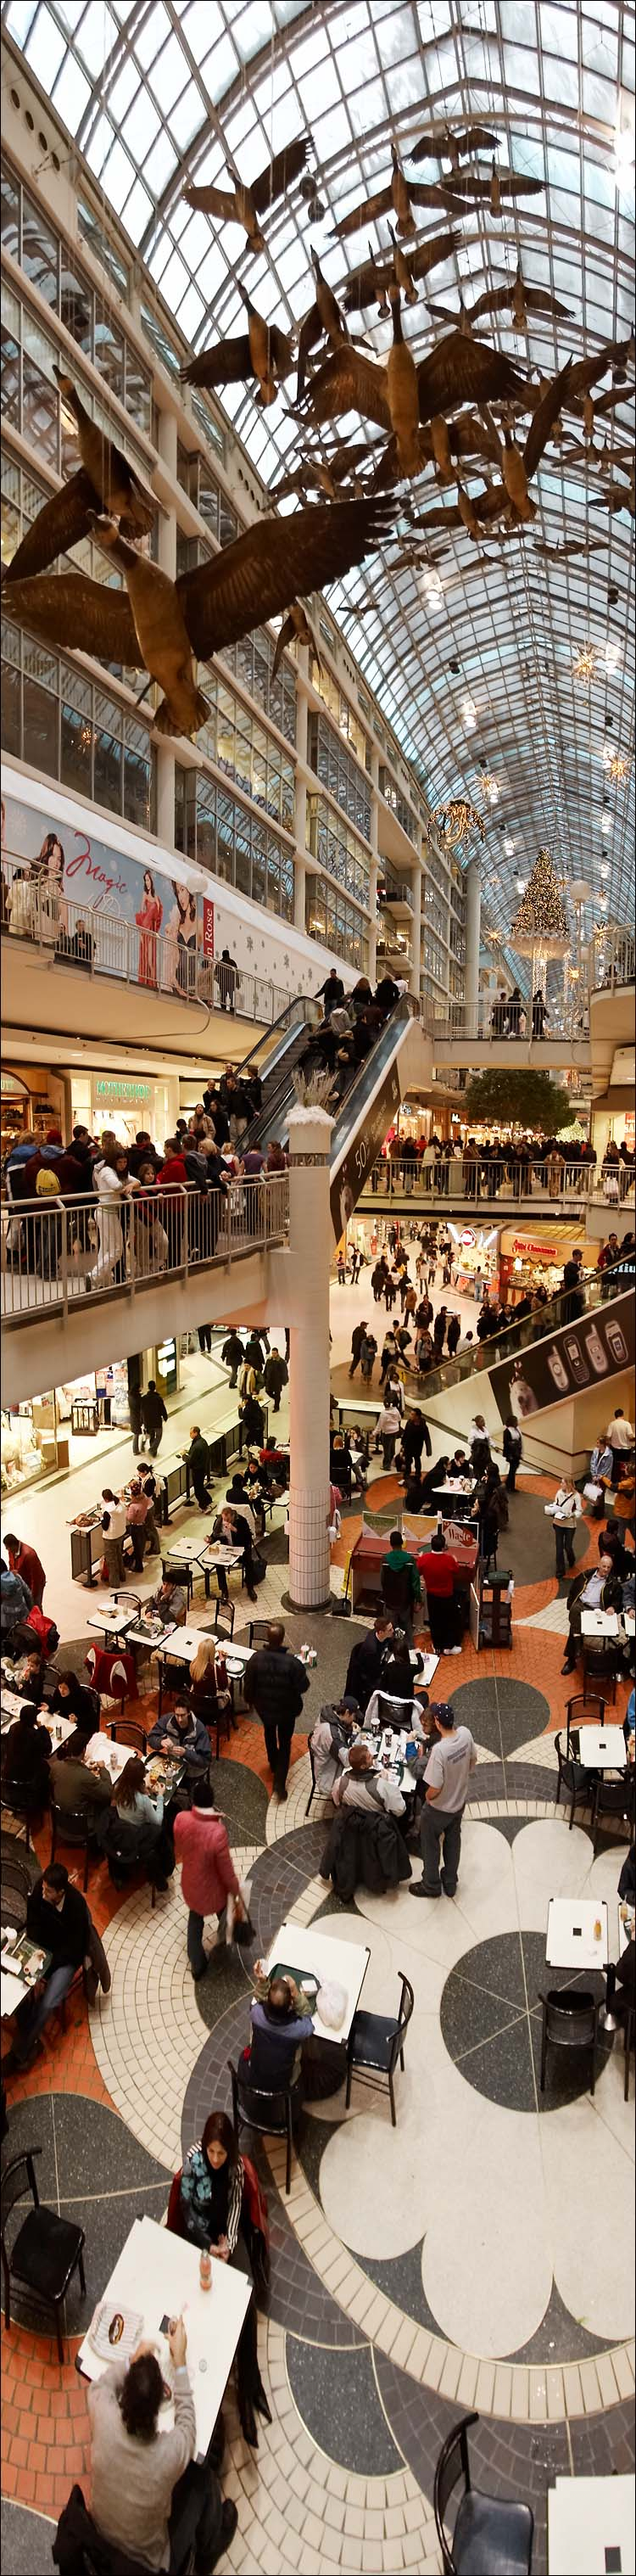 tall mall || canon350d/ef17-40L@17 | 1/25s | f4 | M | iso400 | handheld